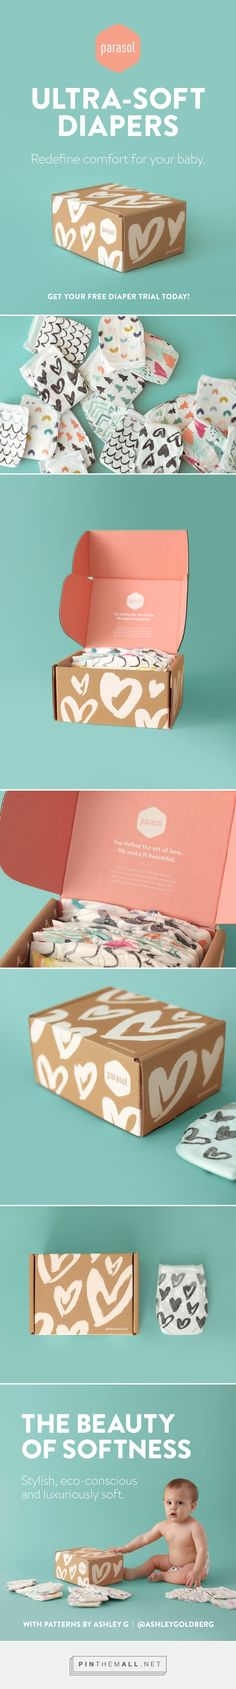 Parasol Co. Diaper Trial Packaging by James Prunean on Behance | Fivestar Branding – Design and Branding Agency & Inspiration Gallery